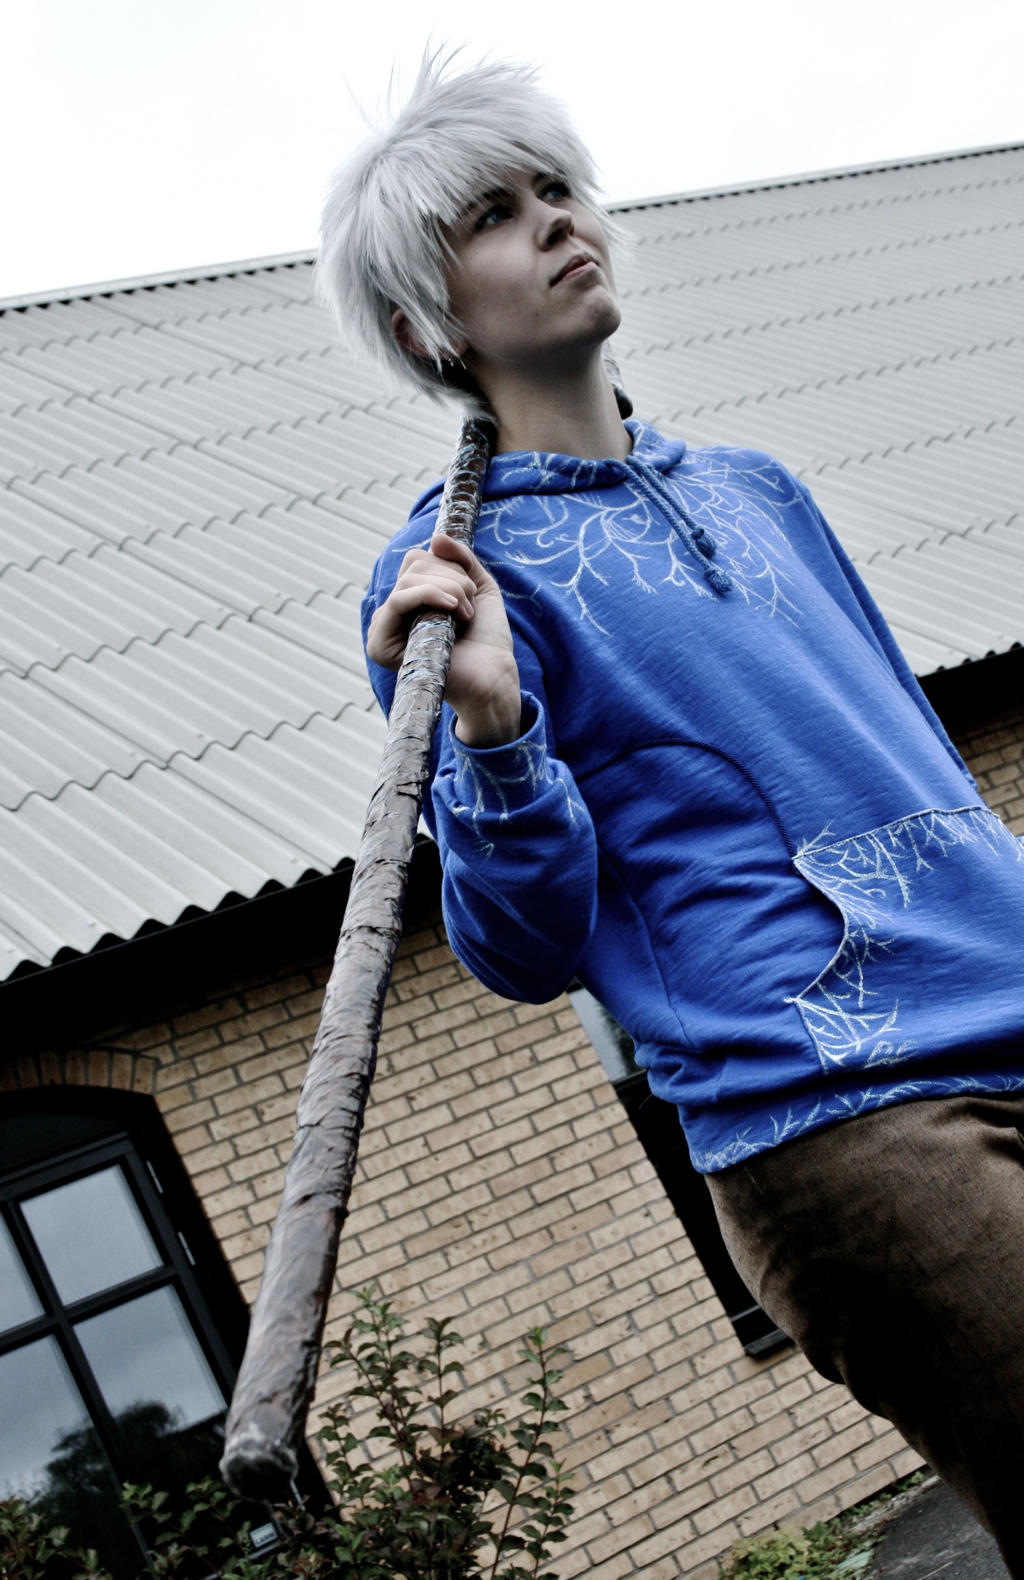 Rise of the Guardians - Jack Frost alone by HappyManga on ... Rise Of The Guardians Cosplay